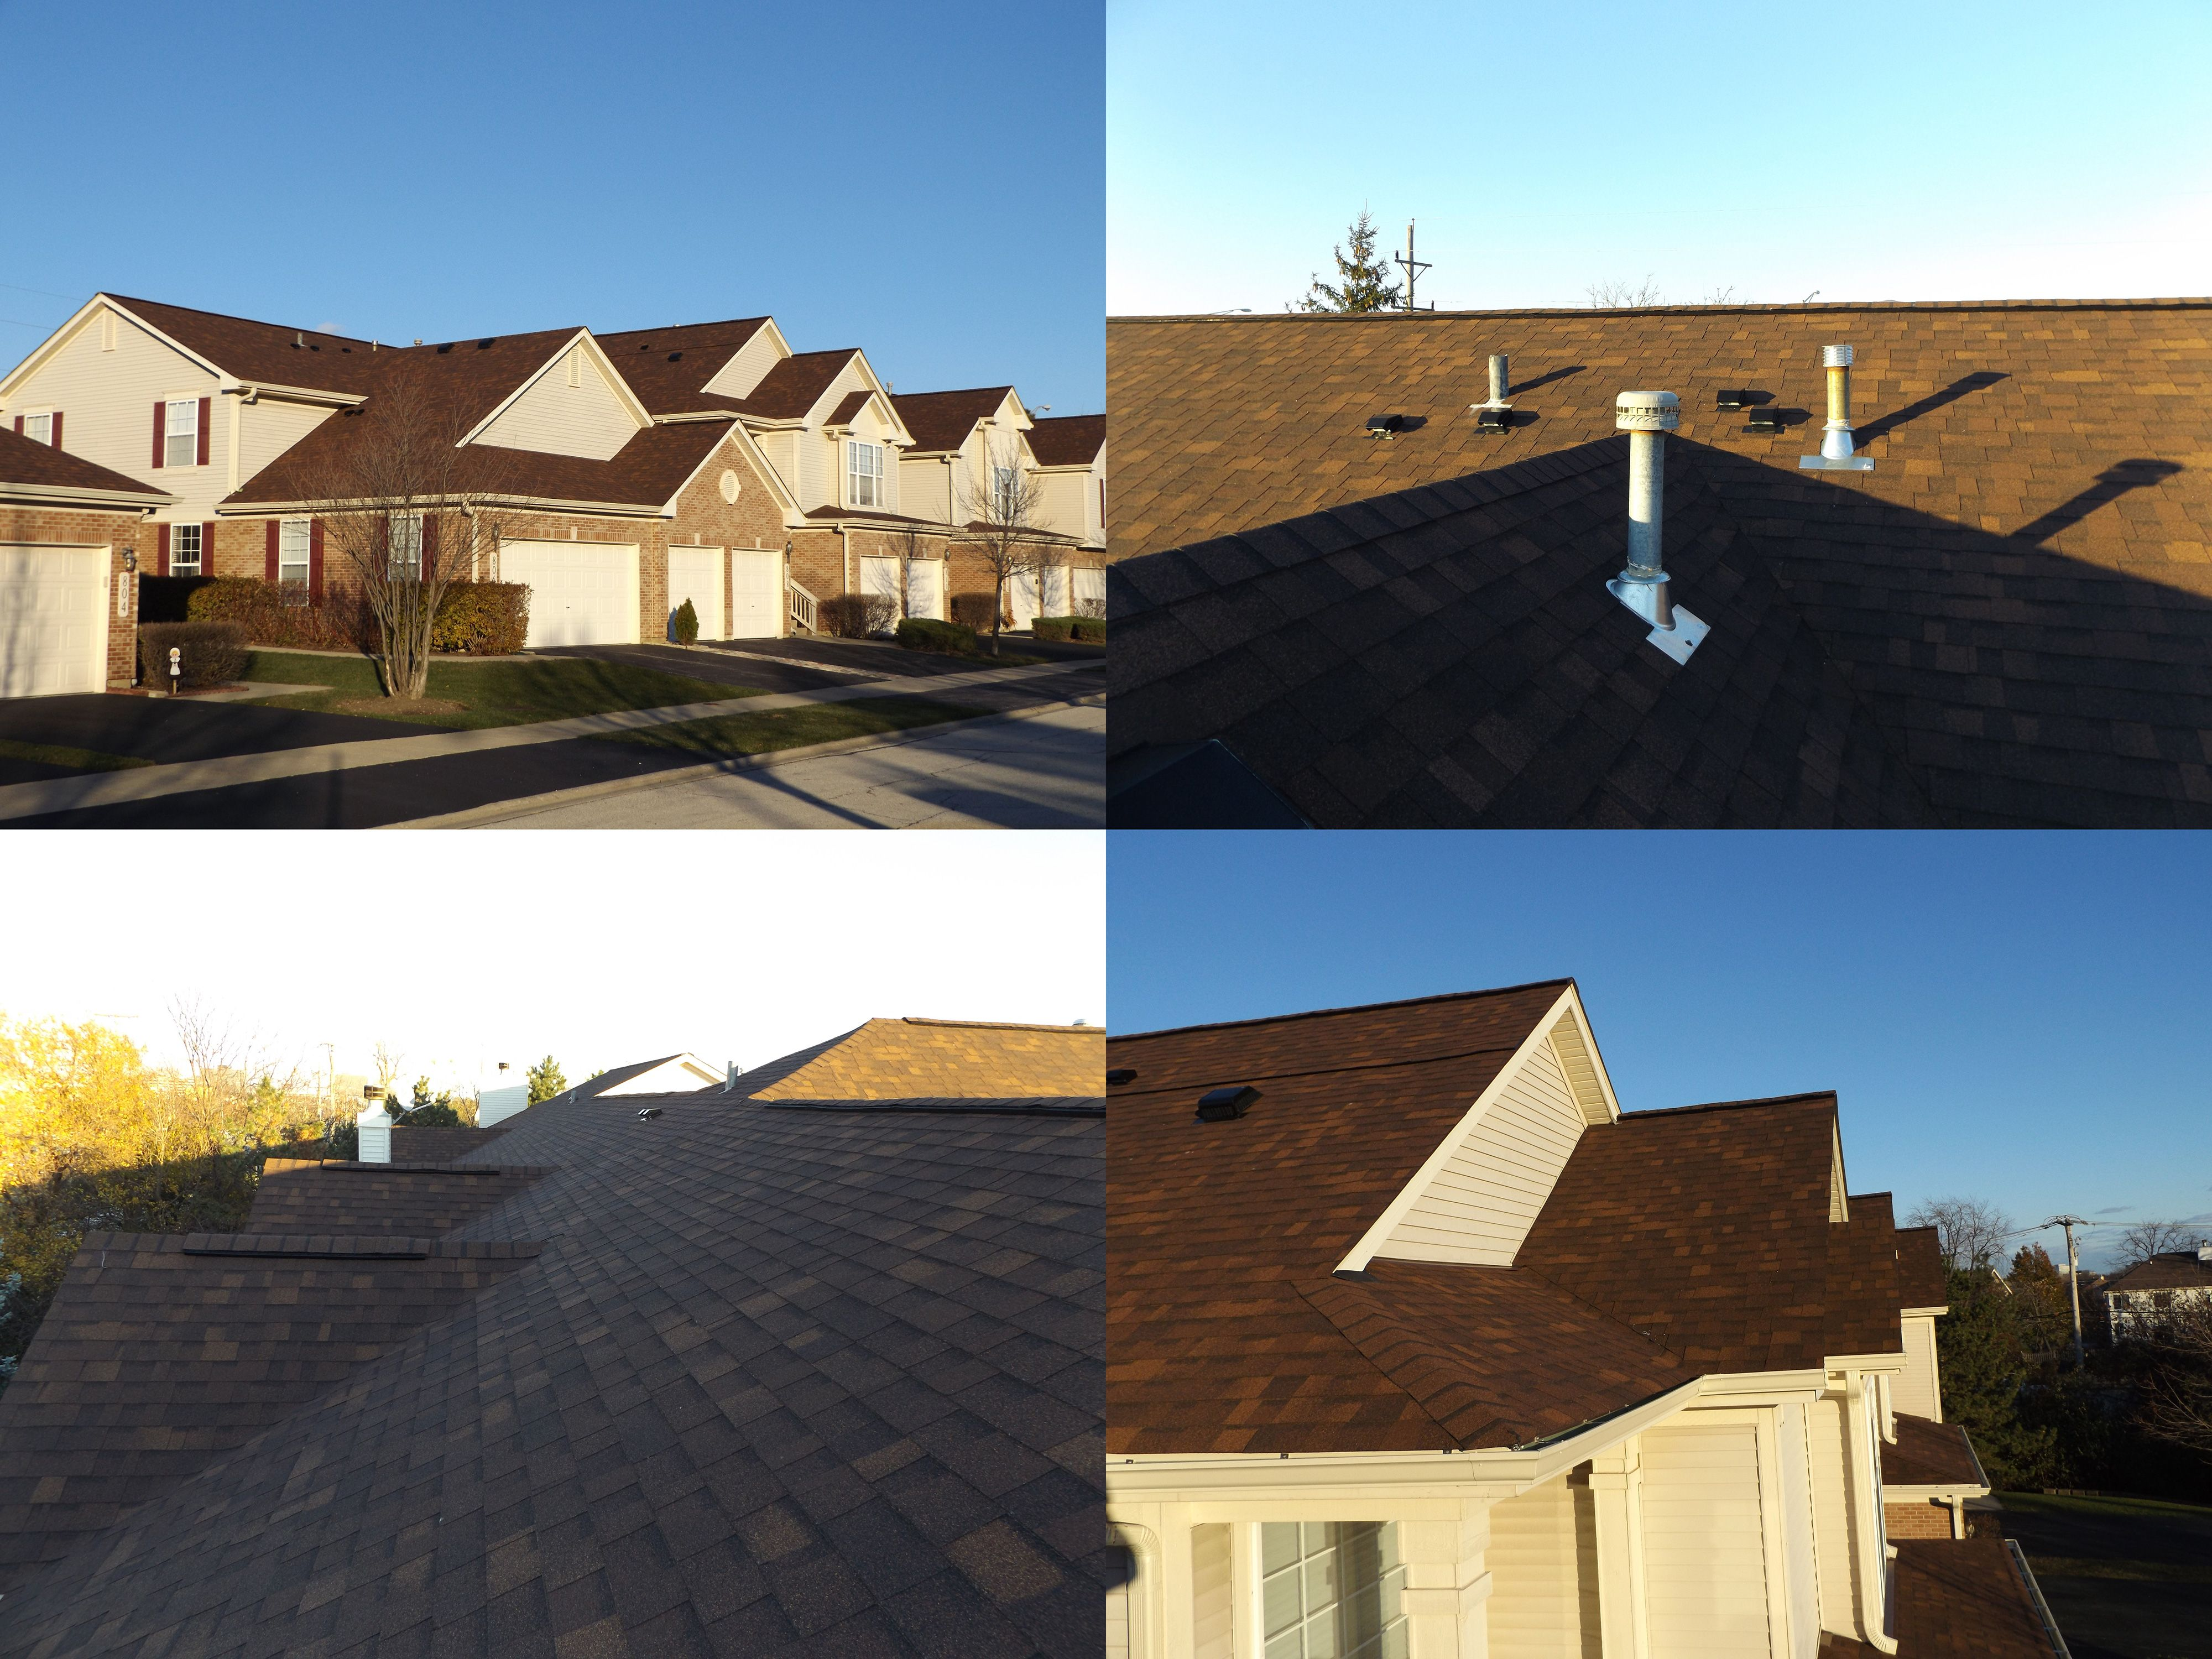 This Is A Recently Finished Multi Family Roofing Job This Roof Replacement Consists Of Owens Corning Oakridge Shingles In Brownwo Roofing Roofing Jobs Roofer